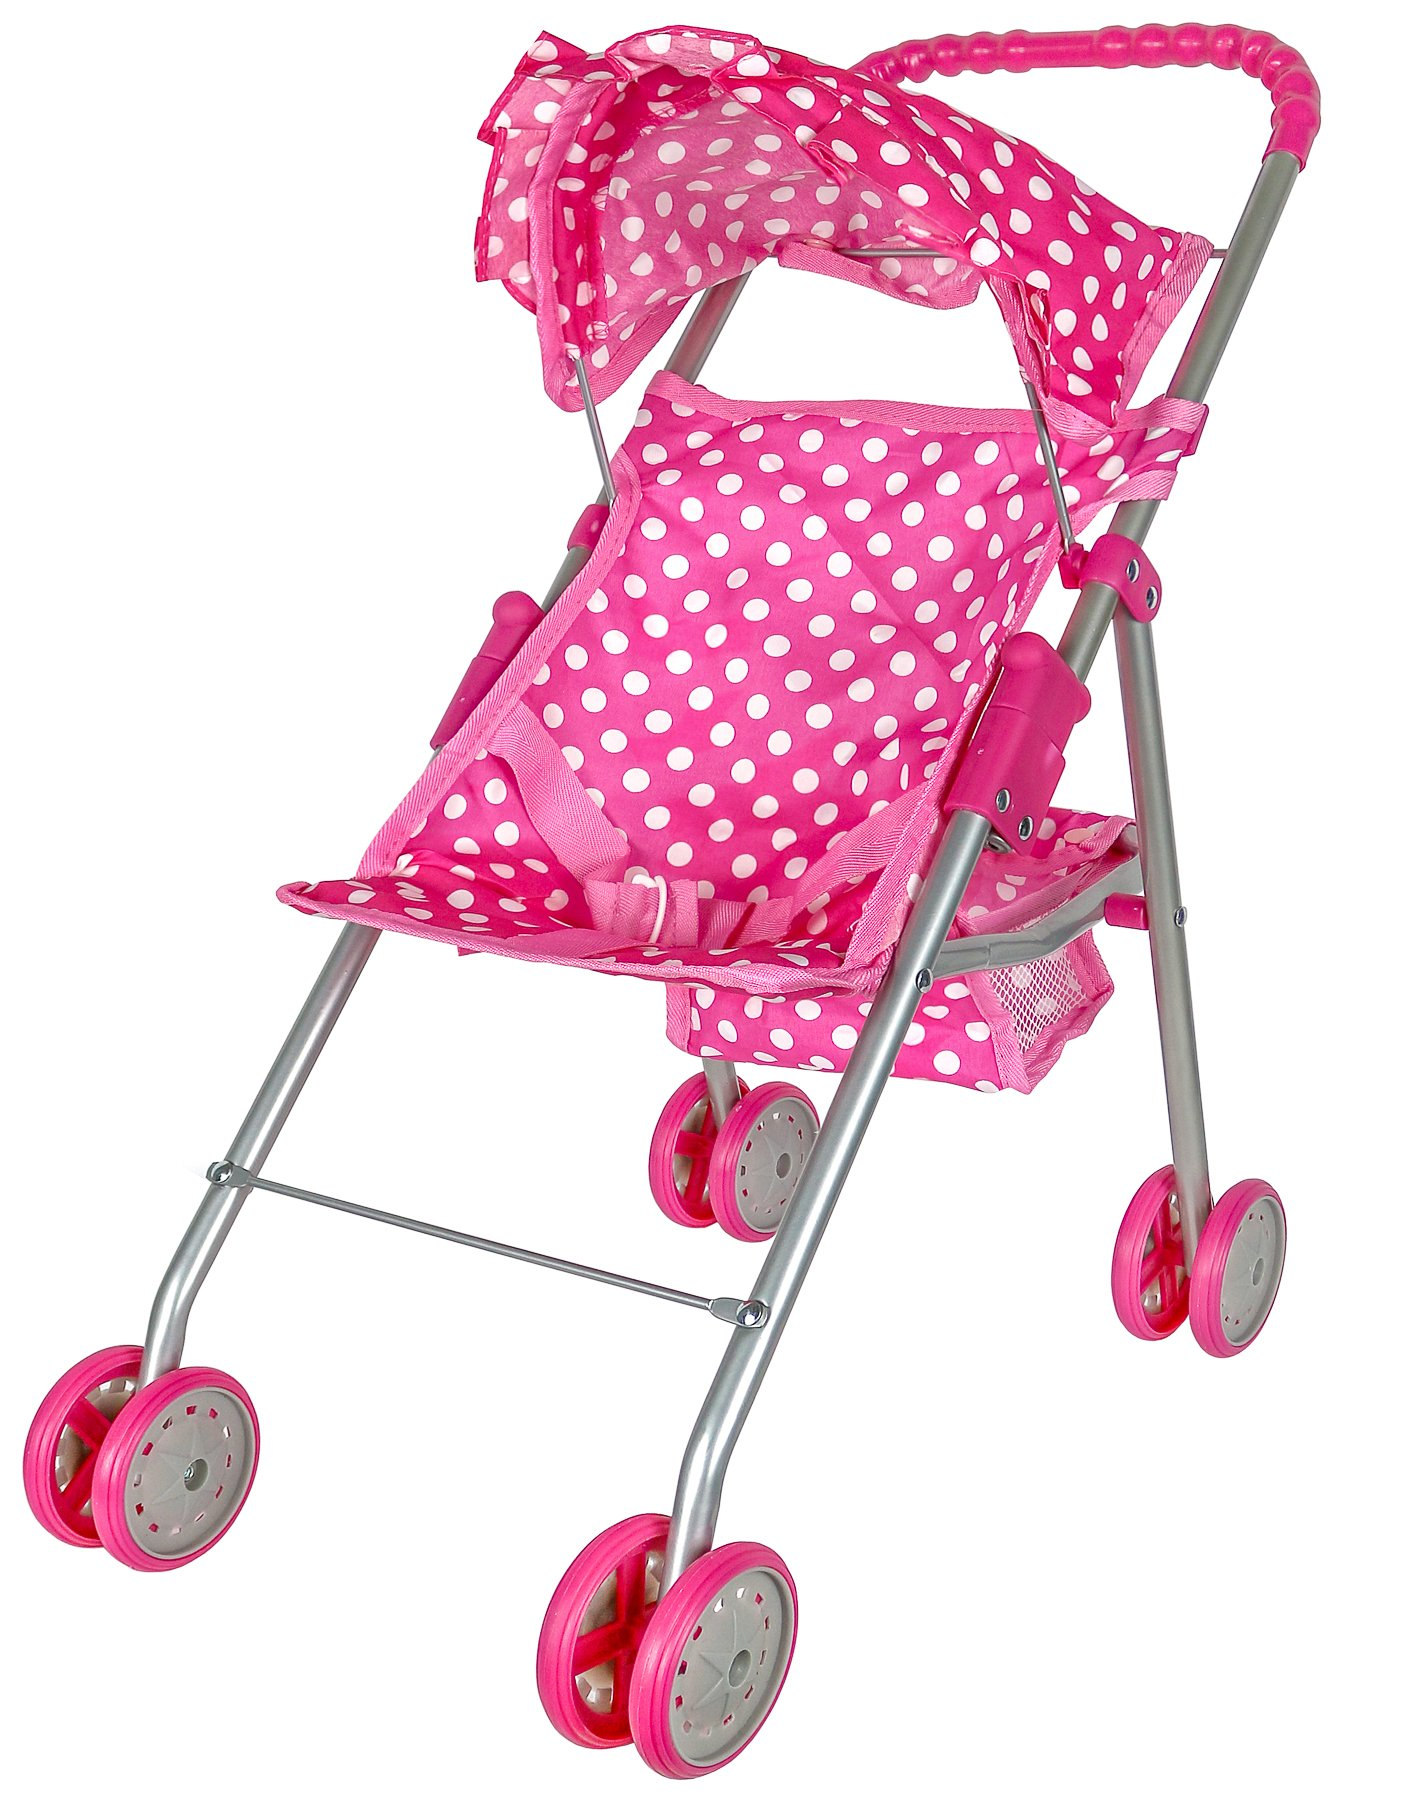 Precious Toys Pink & White Polka Dots Foldable Doll Stroller With Hood by Precious toys